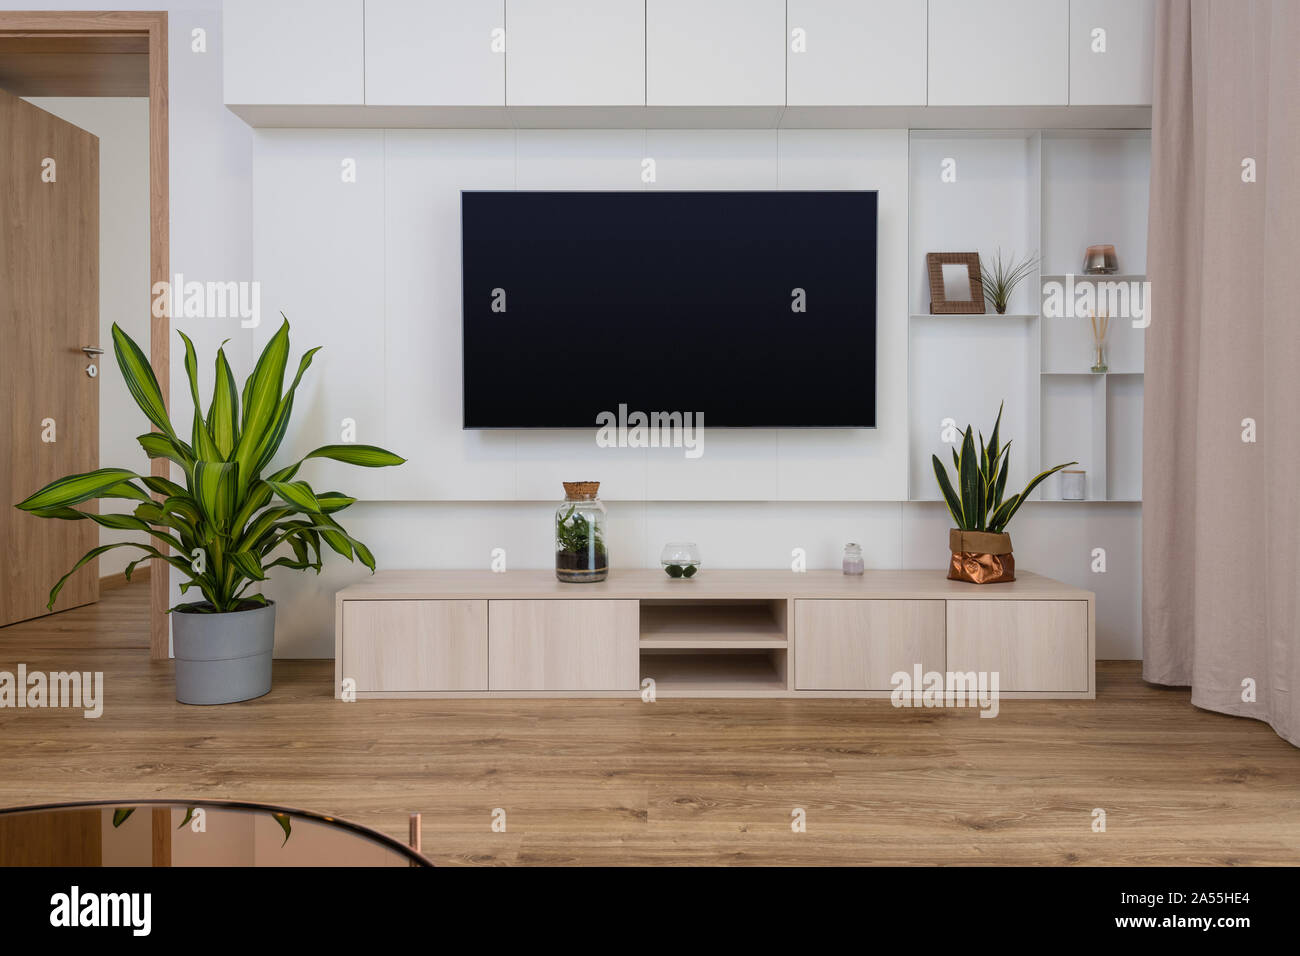 Interior Of Contemporary Living Room With Tv On The Wall Stock Photo Alamy